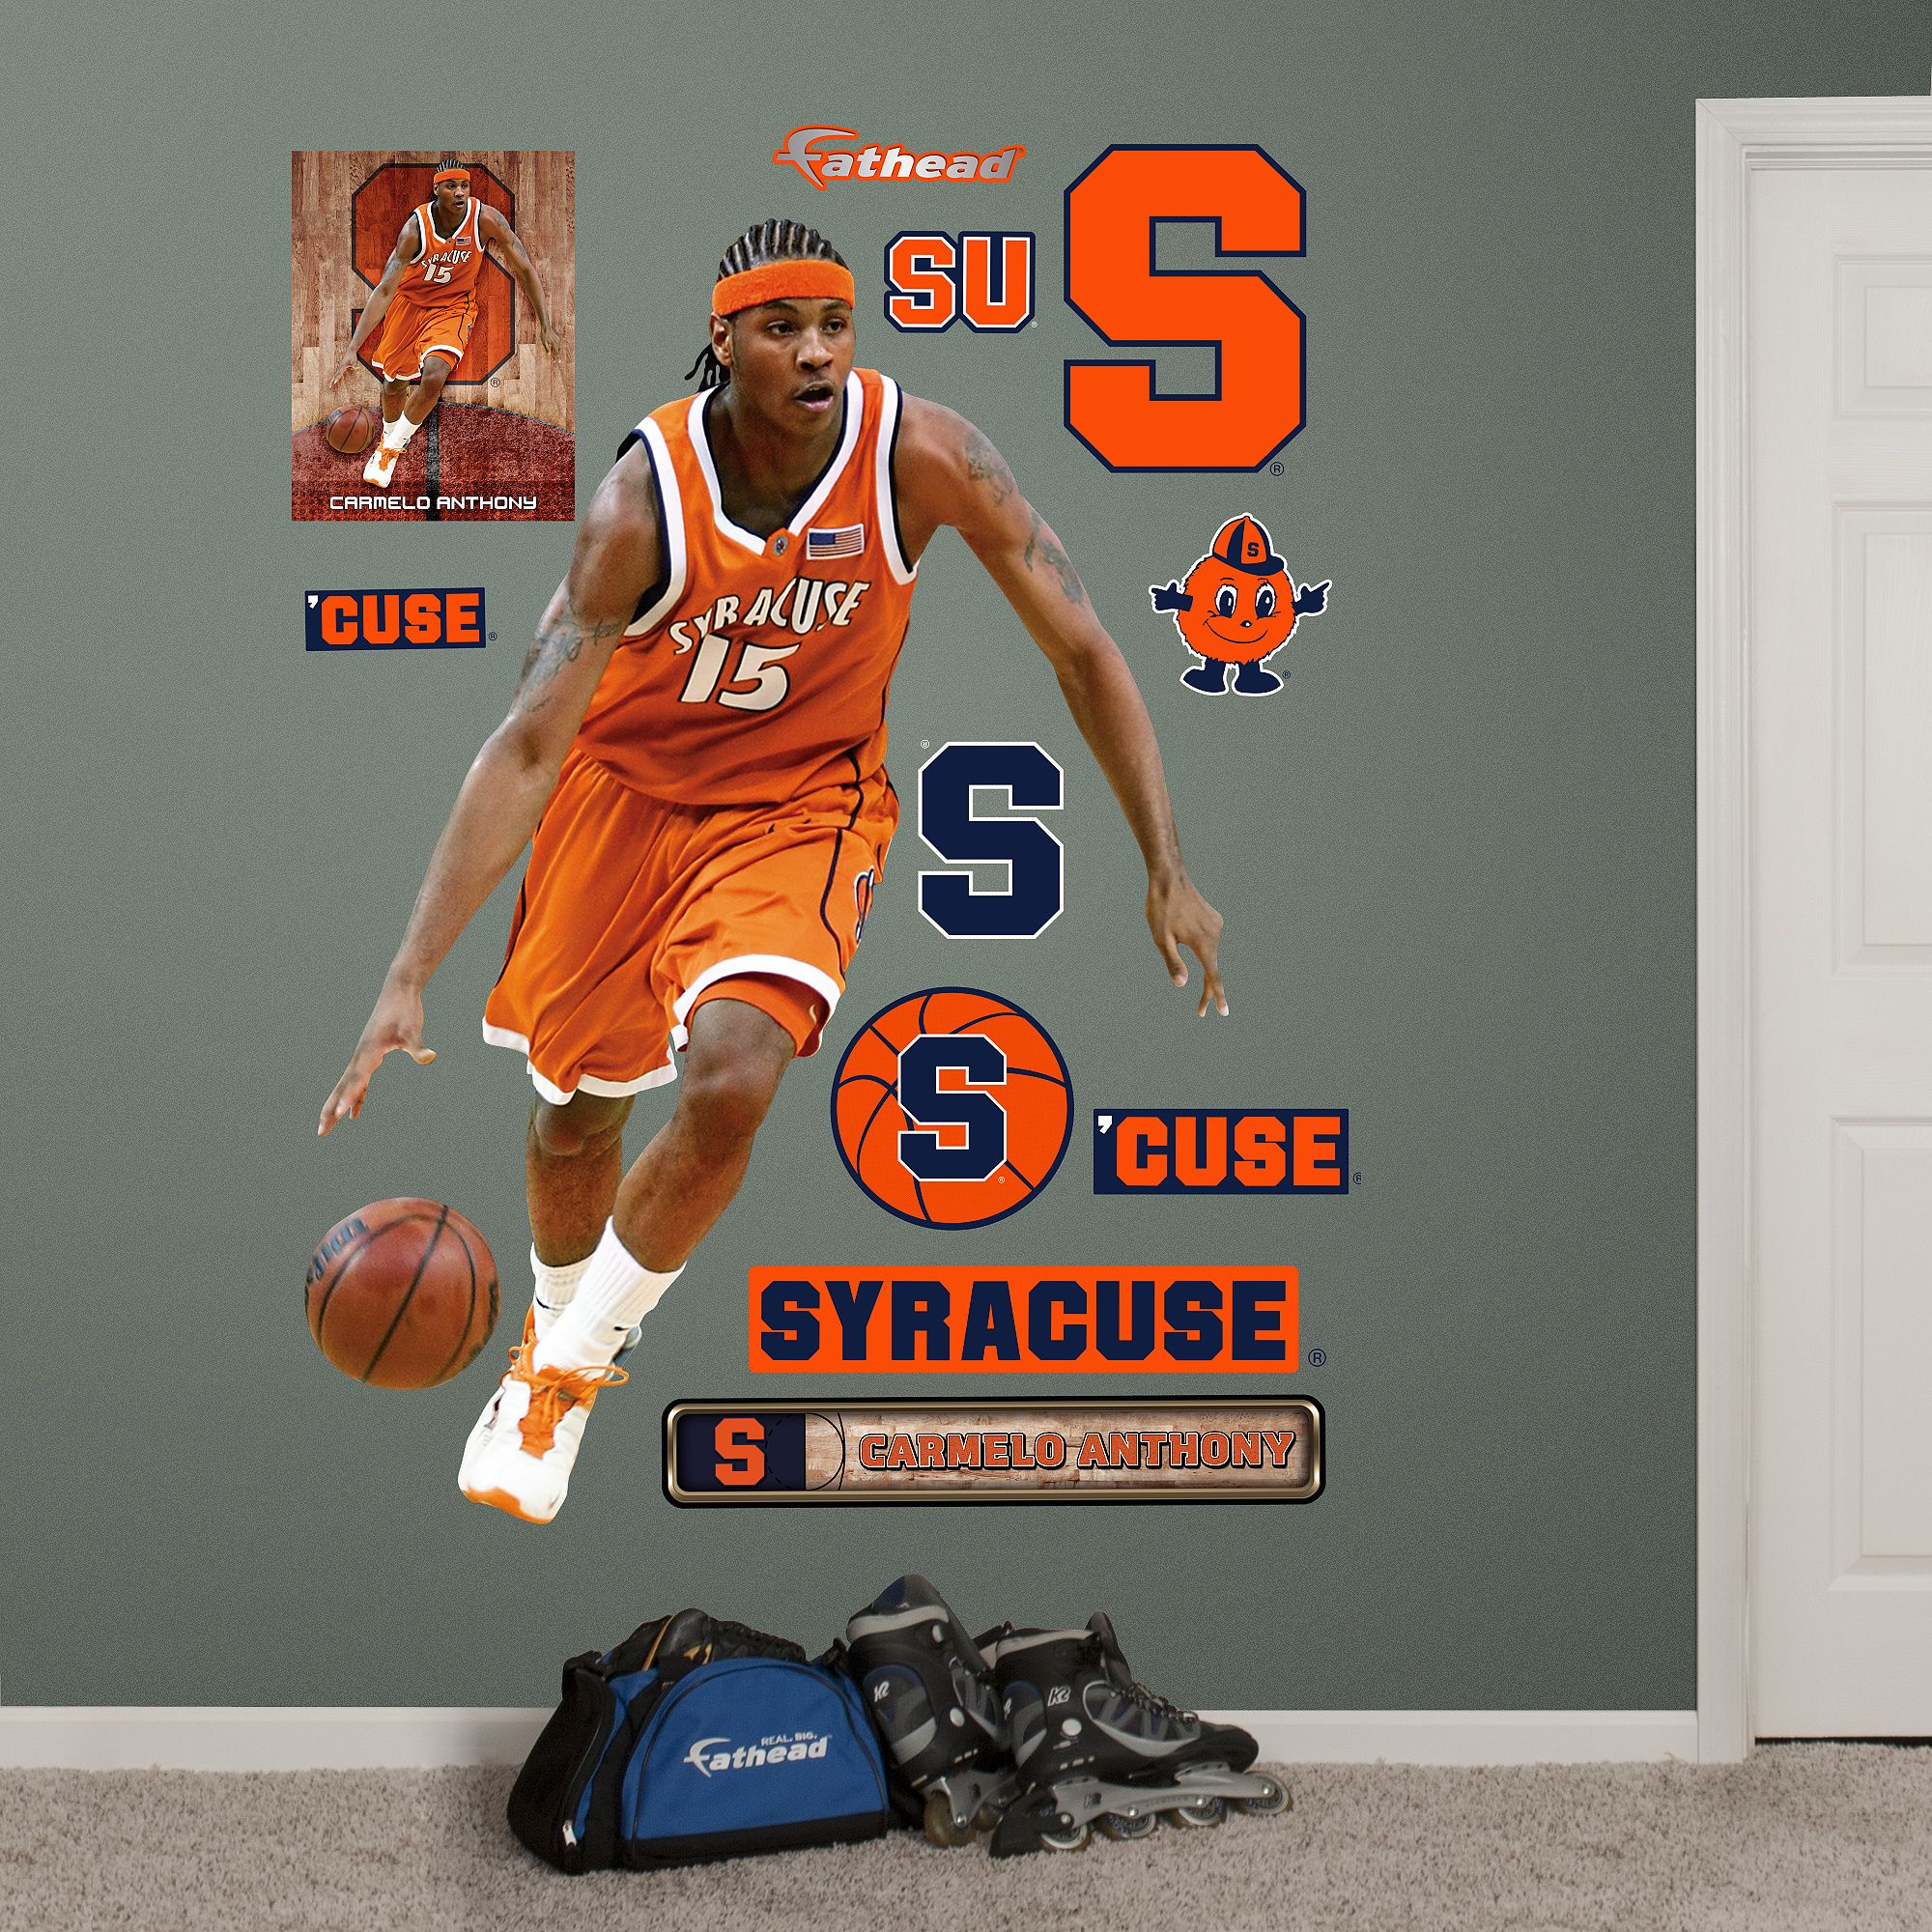 643cf497ae9 Carmelo Anthony, Syracuse Orange | Syracuse | Syracuse orangemen ...